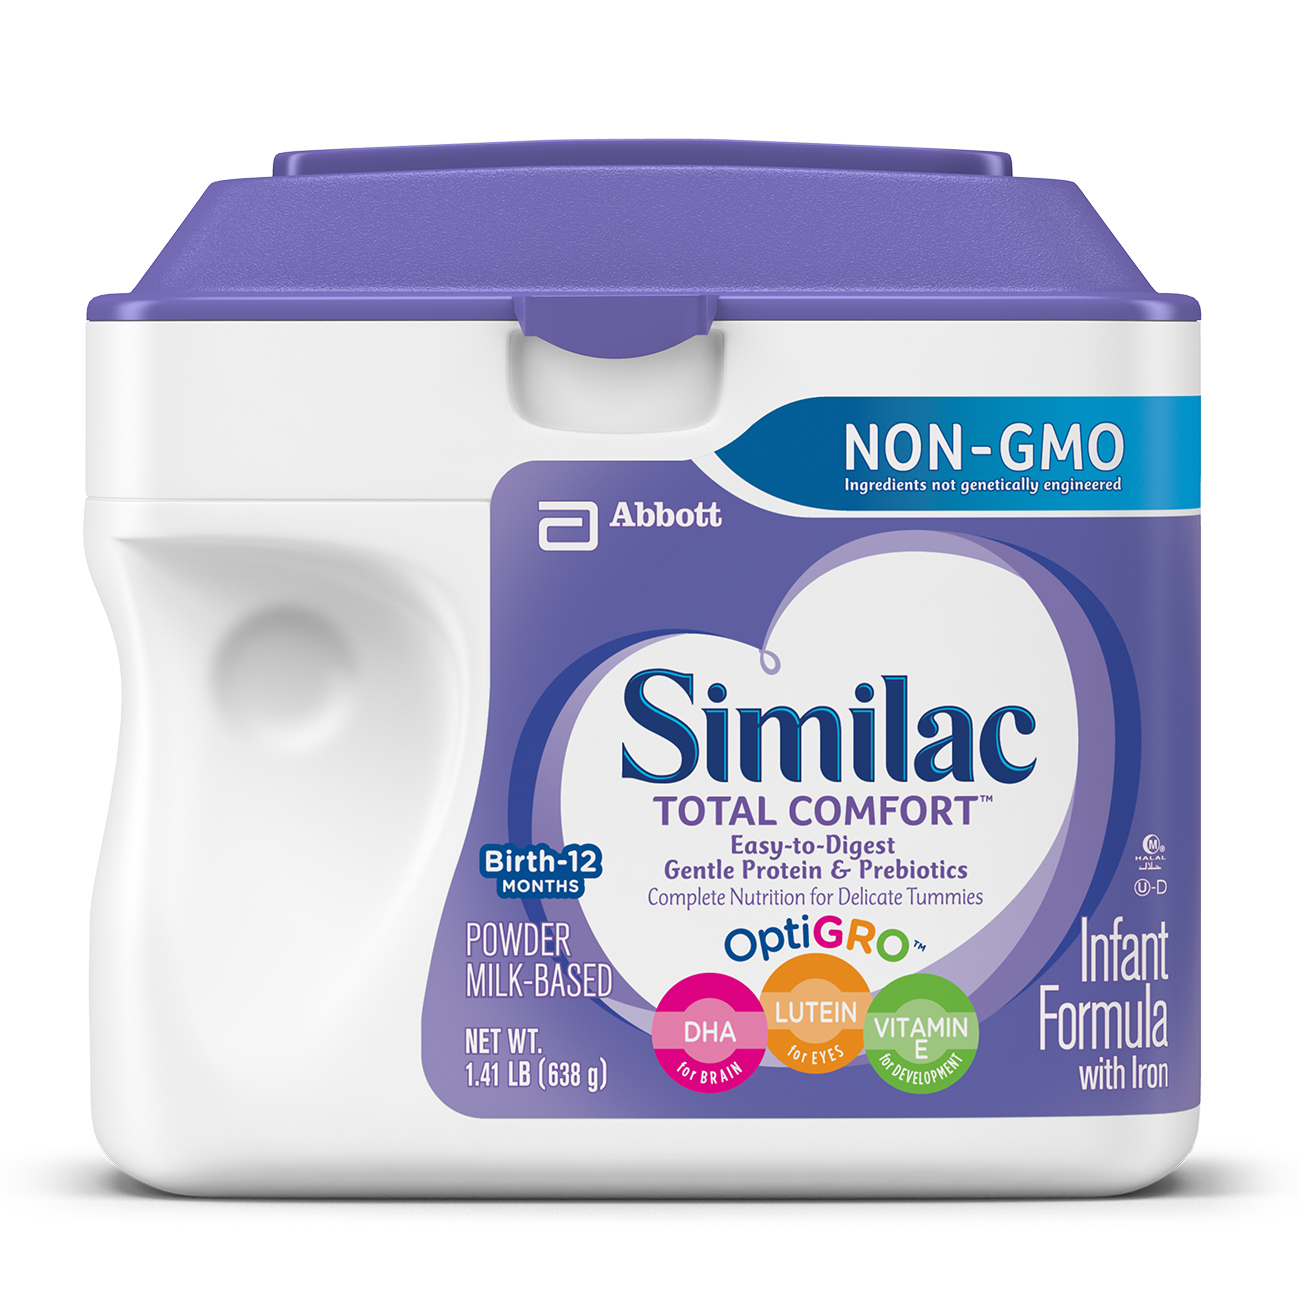 Similac Total Comfort NON-GMO Infant Formula with Iron, Powder, 1.41 Pounds